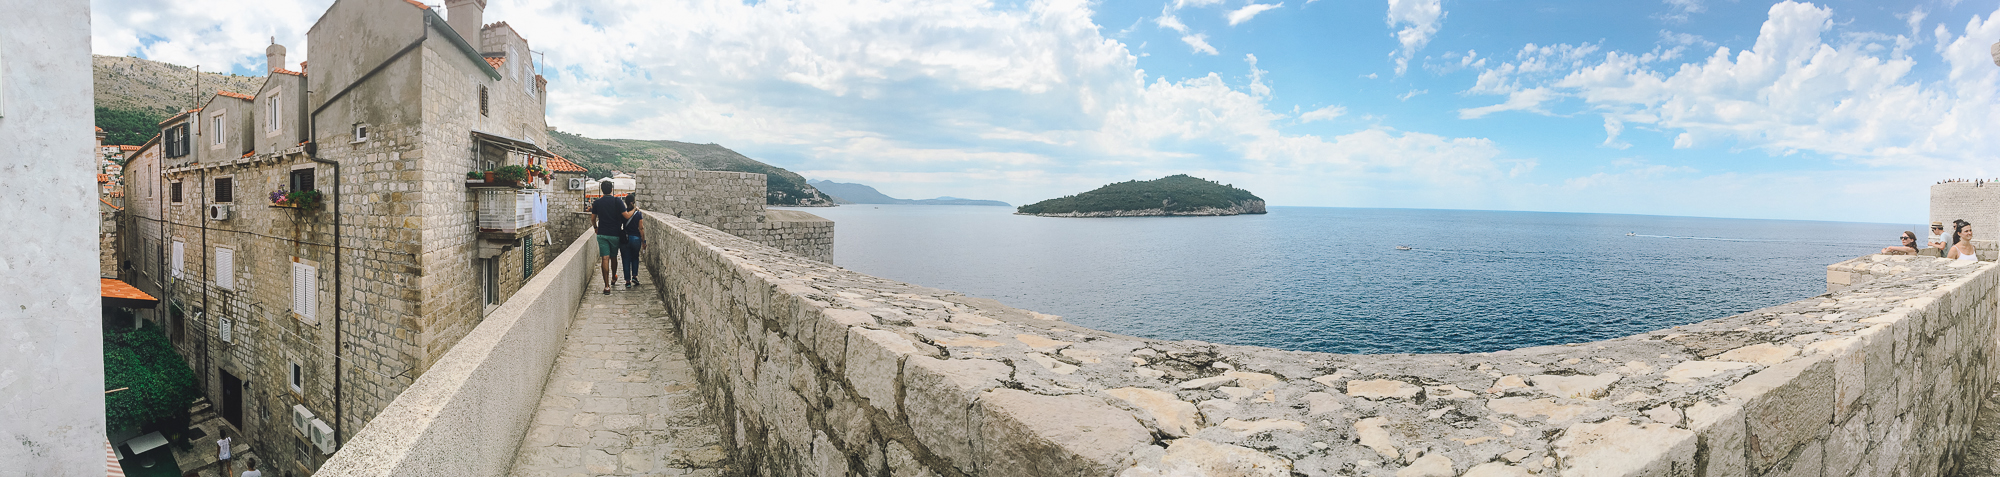 croatia, dubrovnik, landscape, panorama, europe, travel, wall, old city